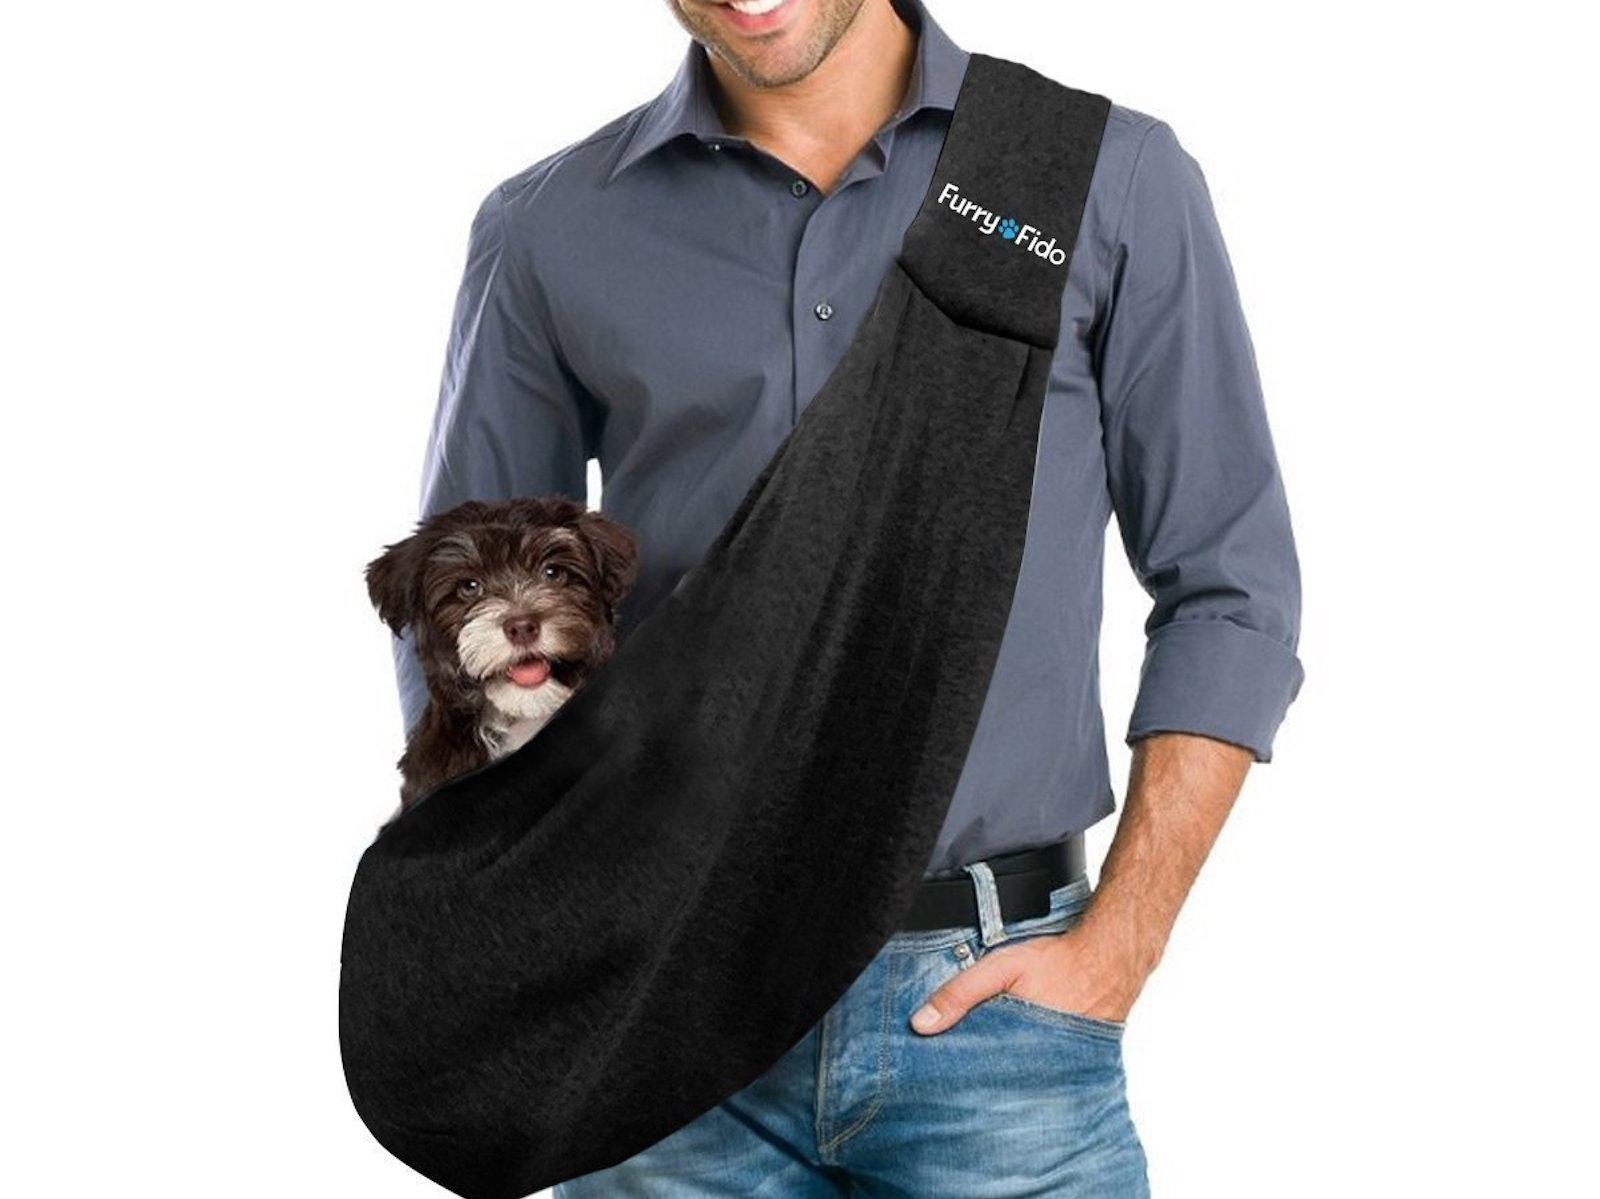 This hipster dog sling